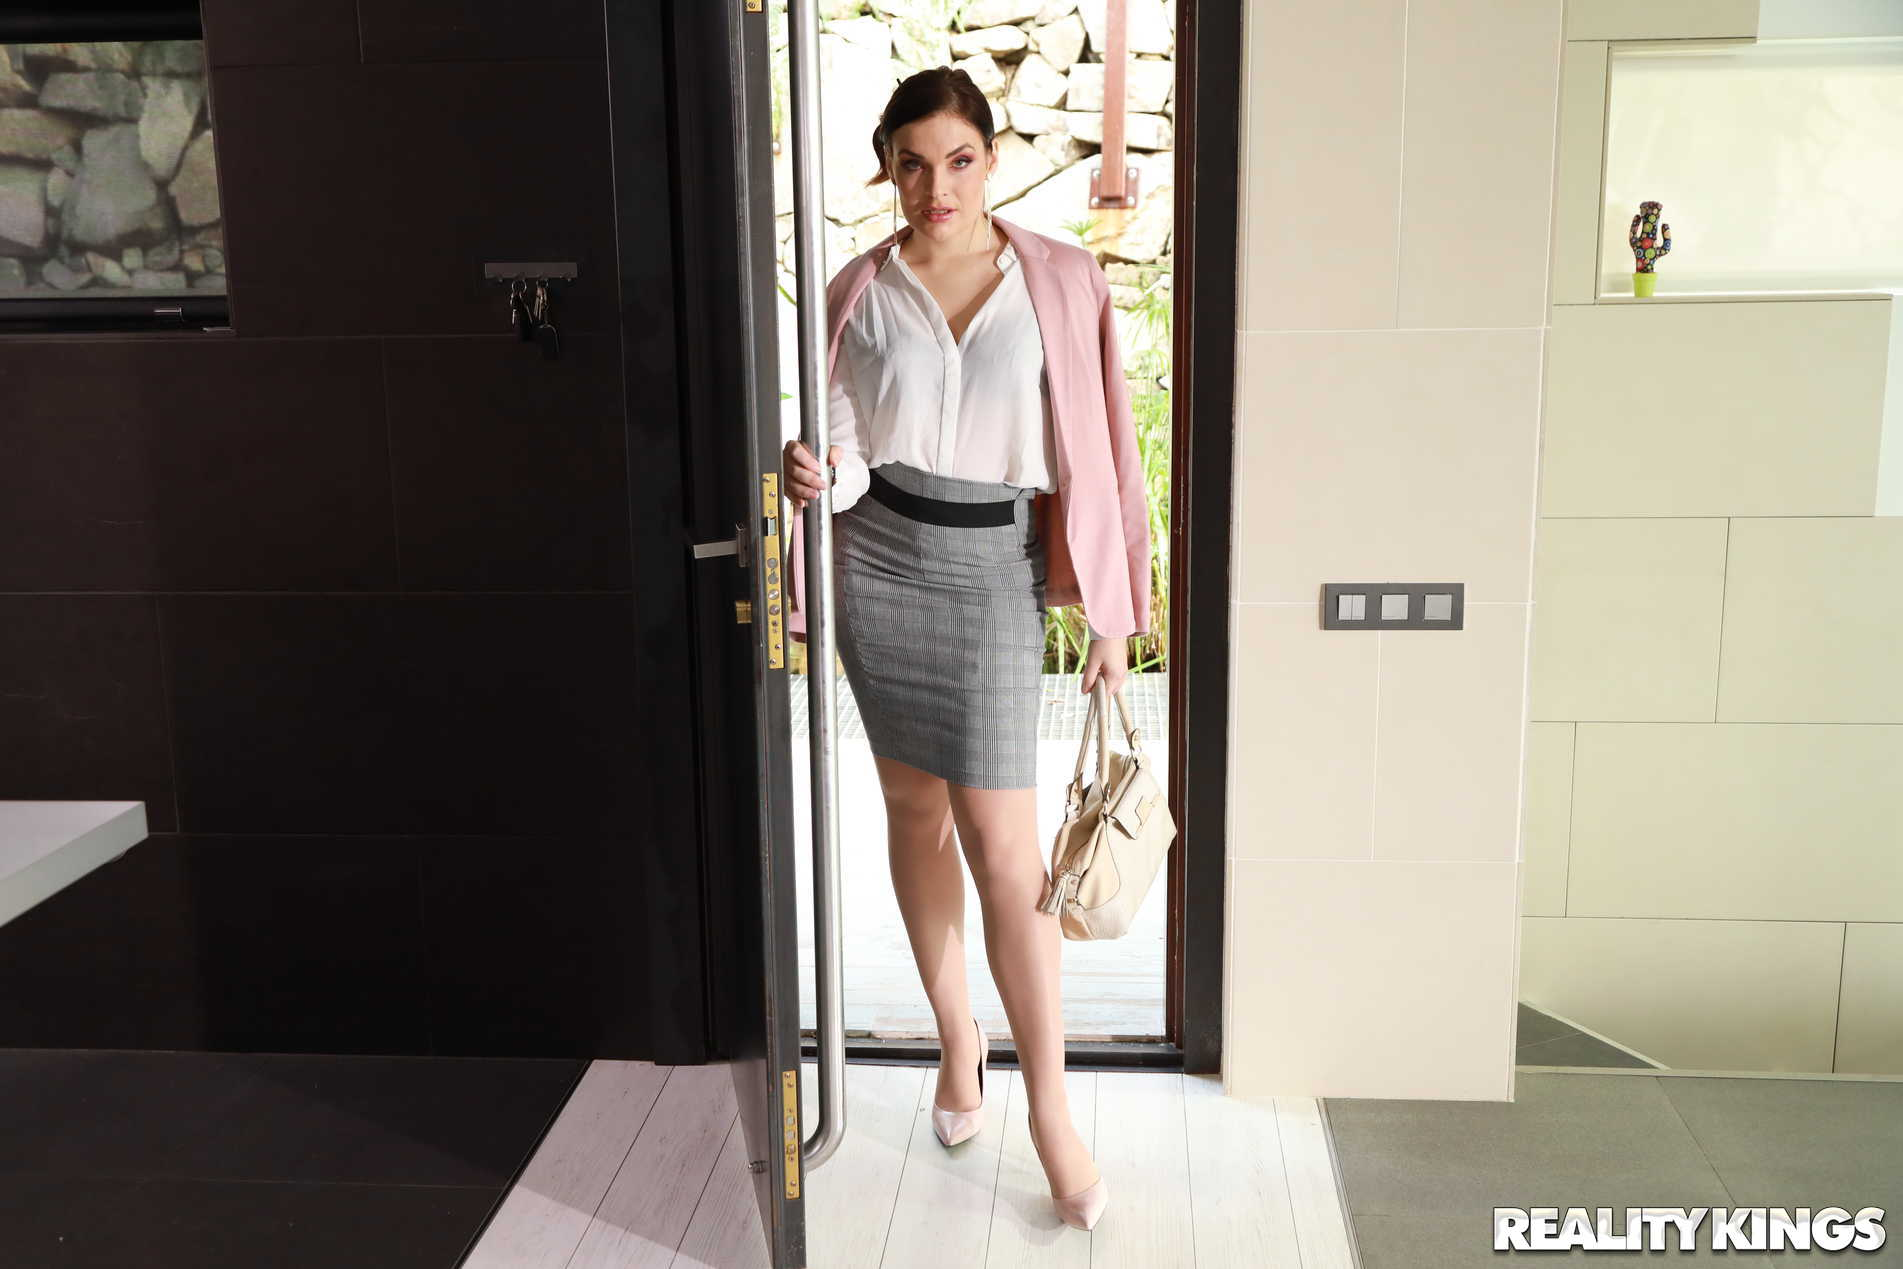 Reality Kings 'From Business To Pleasure' starring Hannah Vivienne (Photo 1)